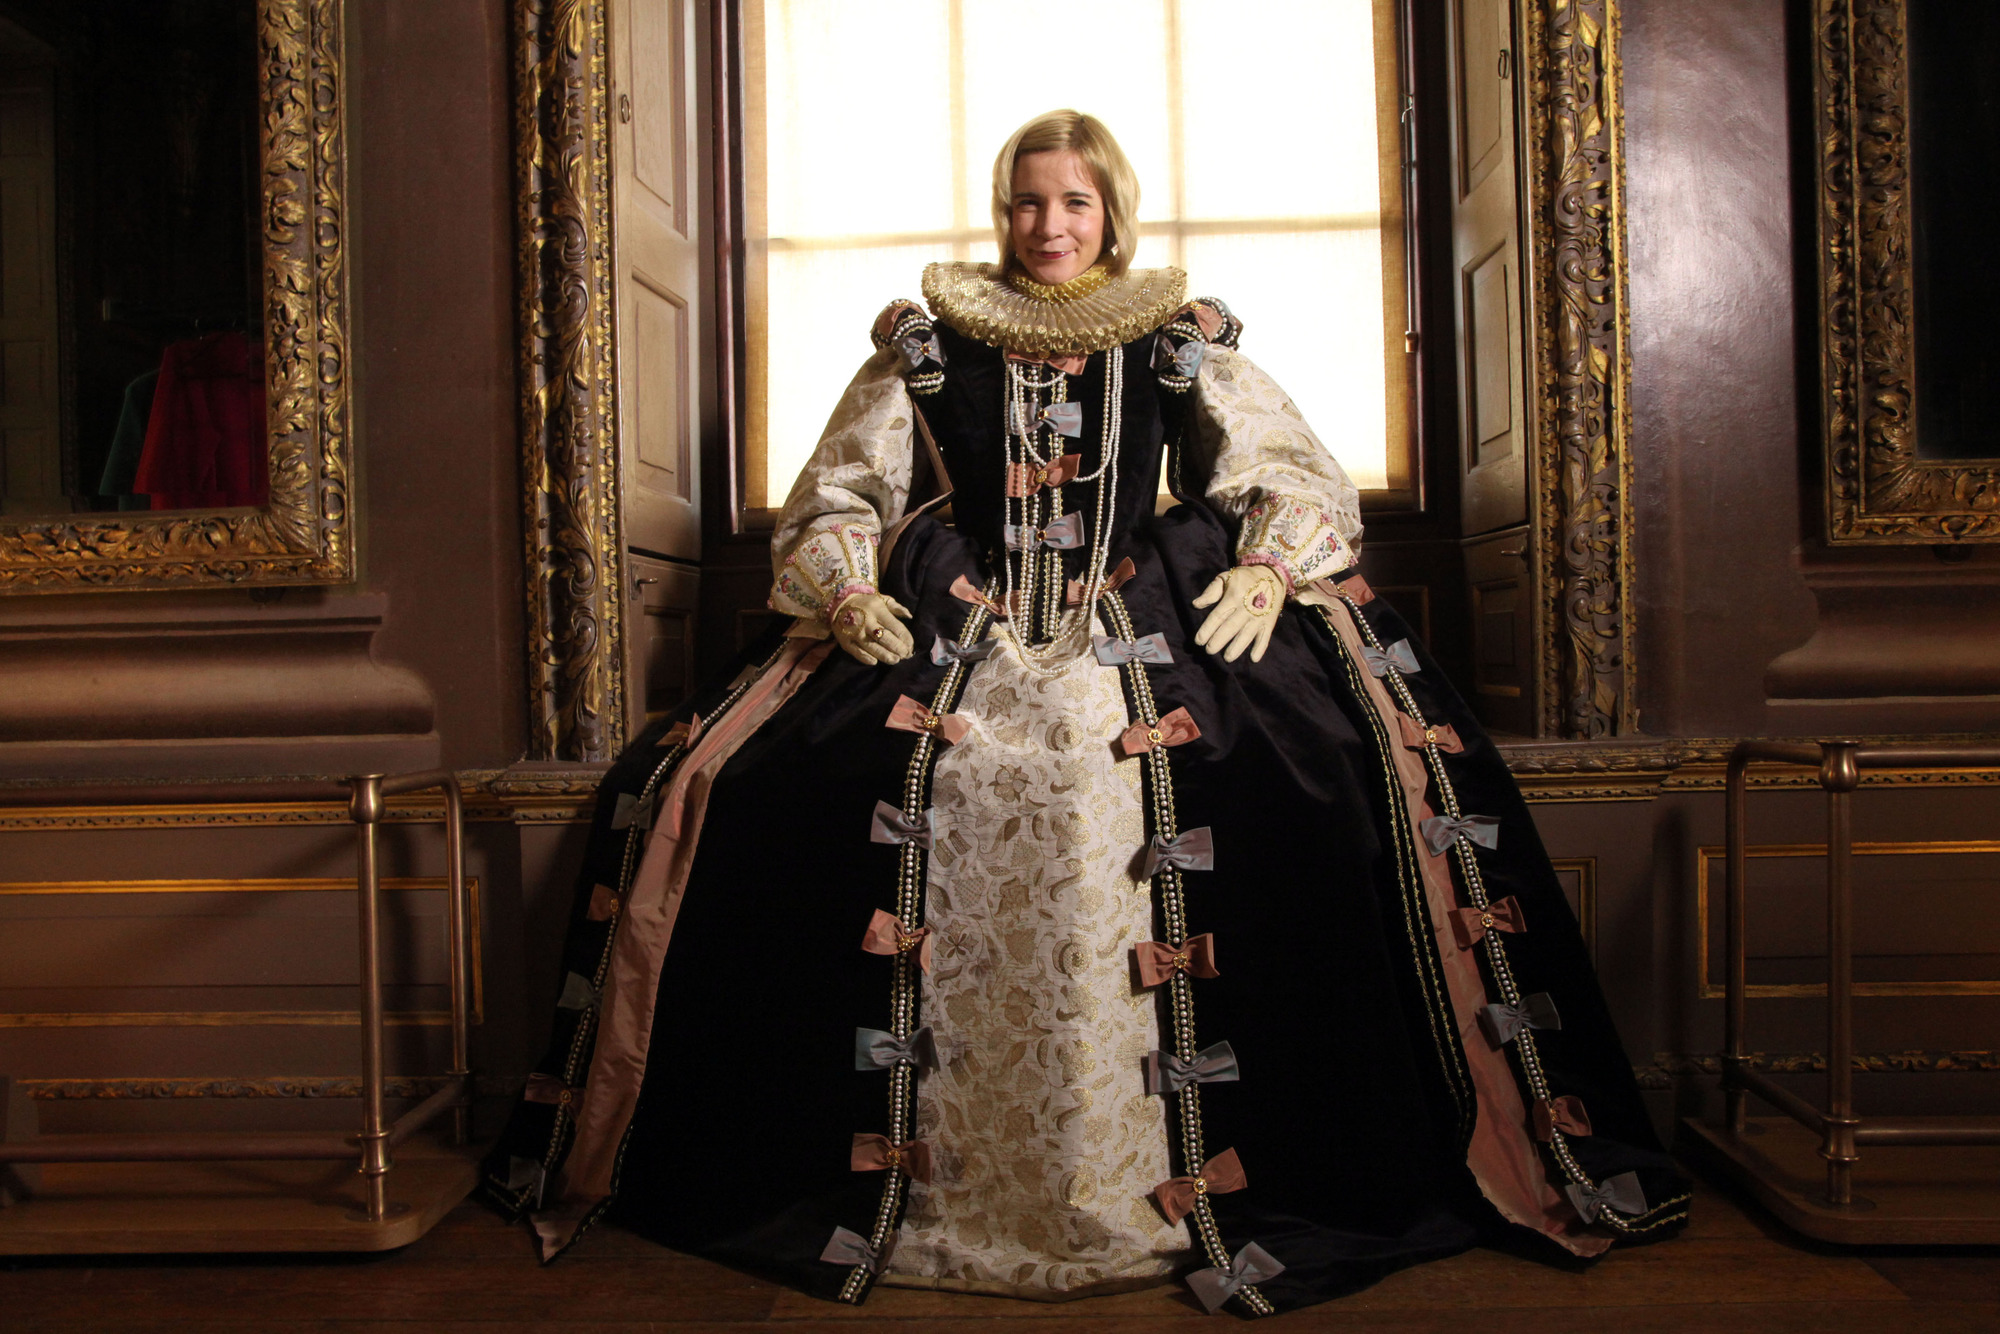 fashion during the elizabethan era Influence on elizabethan fashion by drea leed no site or book on elizabethan costume can be complete without a mention of the woman who gave the era (and the era's costume) its name: queen elizabeth.